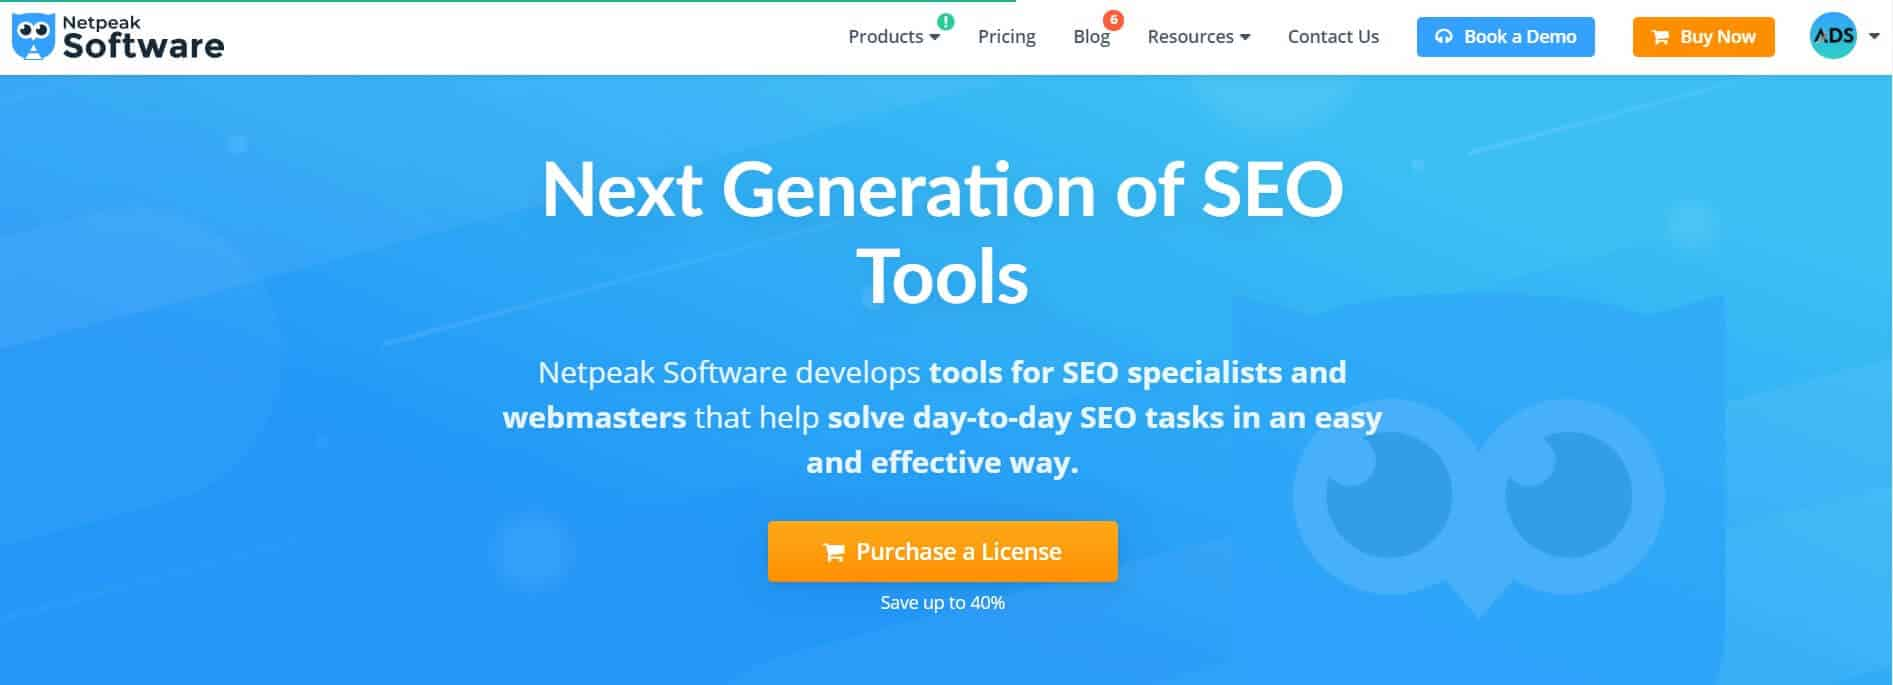 Netpeak Software develops tools for SEO specialists and webmasters that help solve day-to-day SEO tasks in an easy and effective way. Best B2B SEO Tools